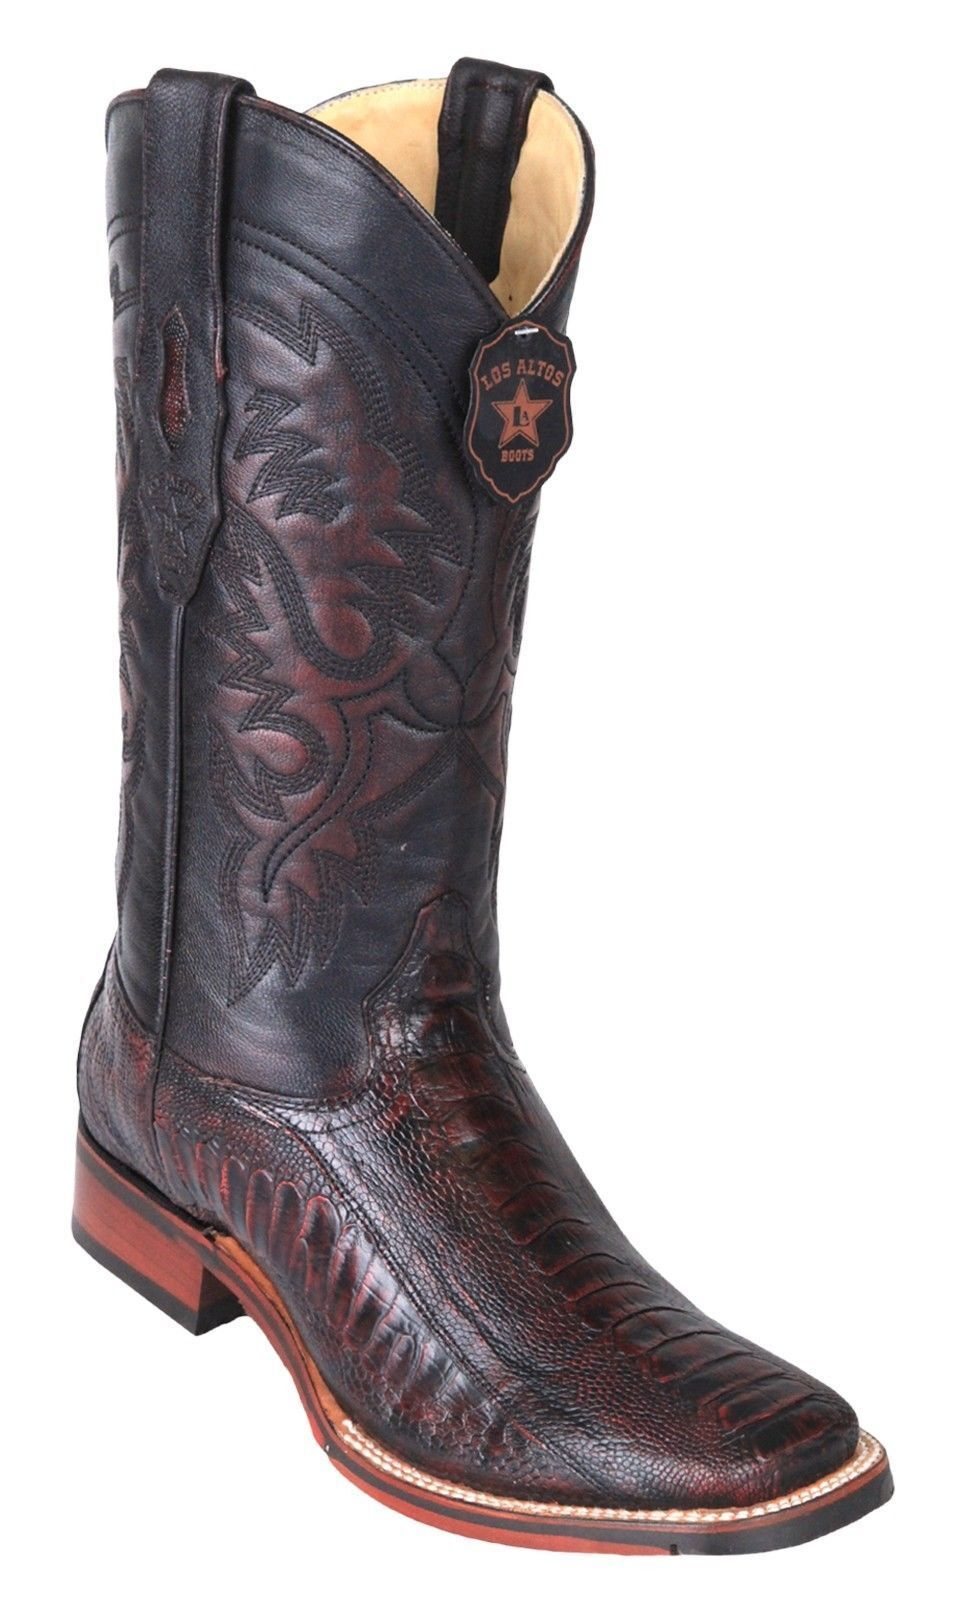 Los Altos CHERRY Ostrich LEG Square Toe TPU Rubber Sole Western Cowboy Boot EE+